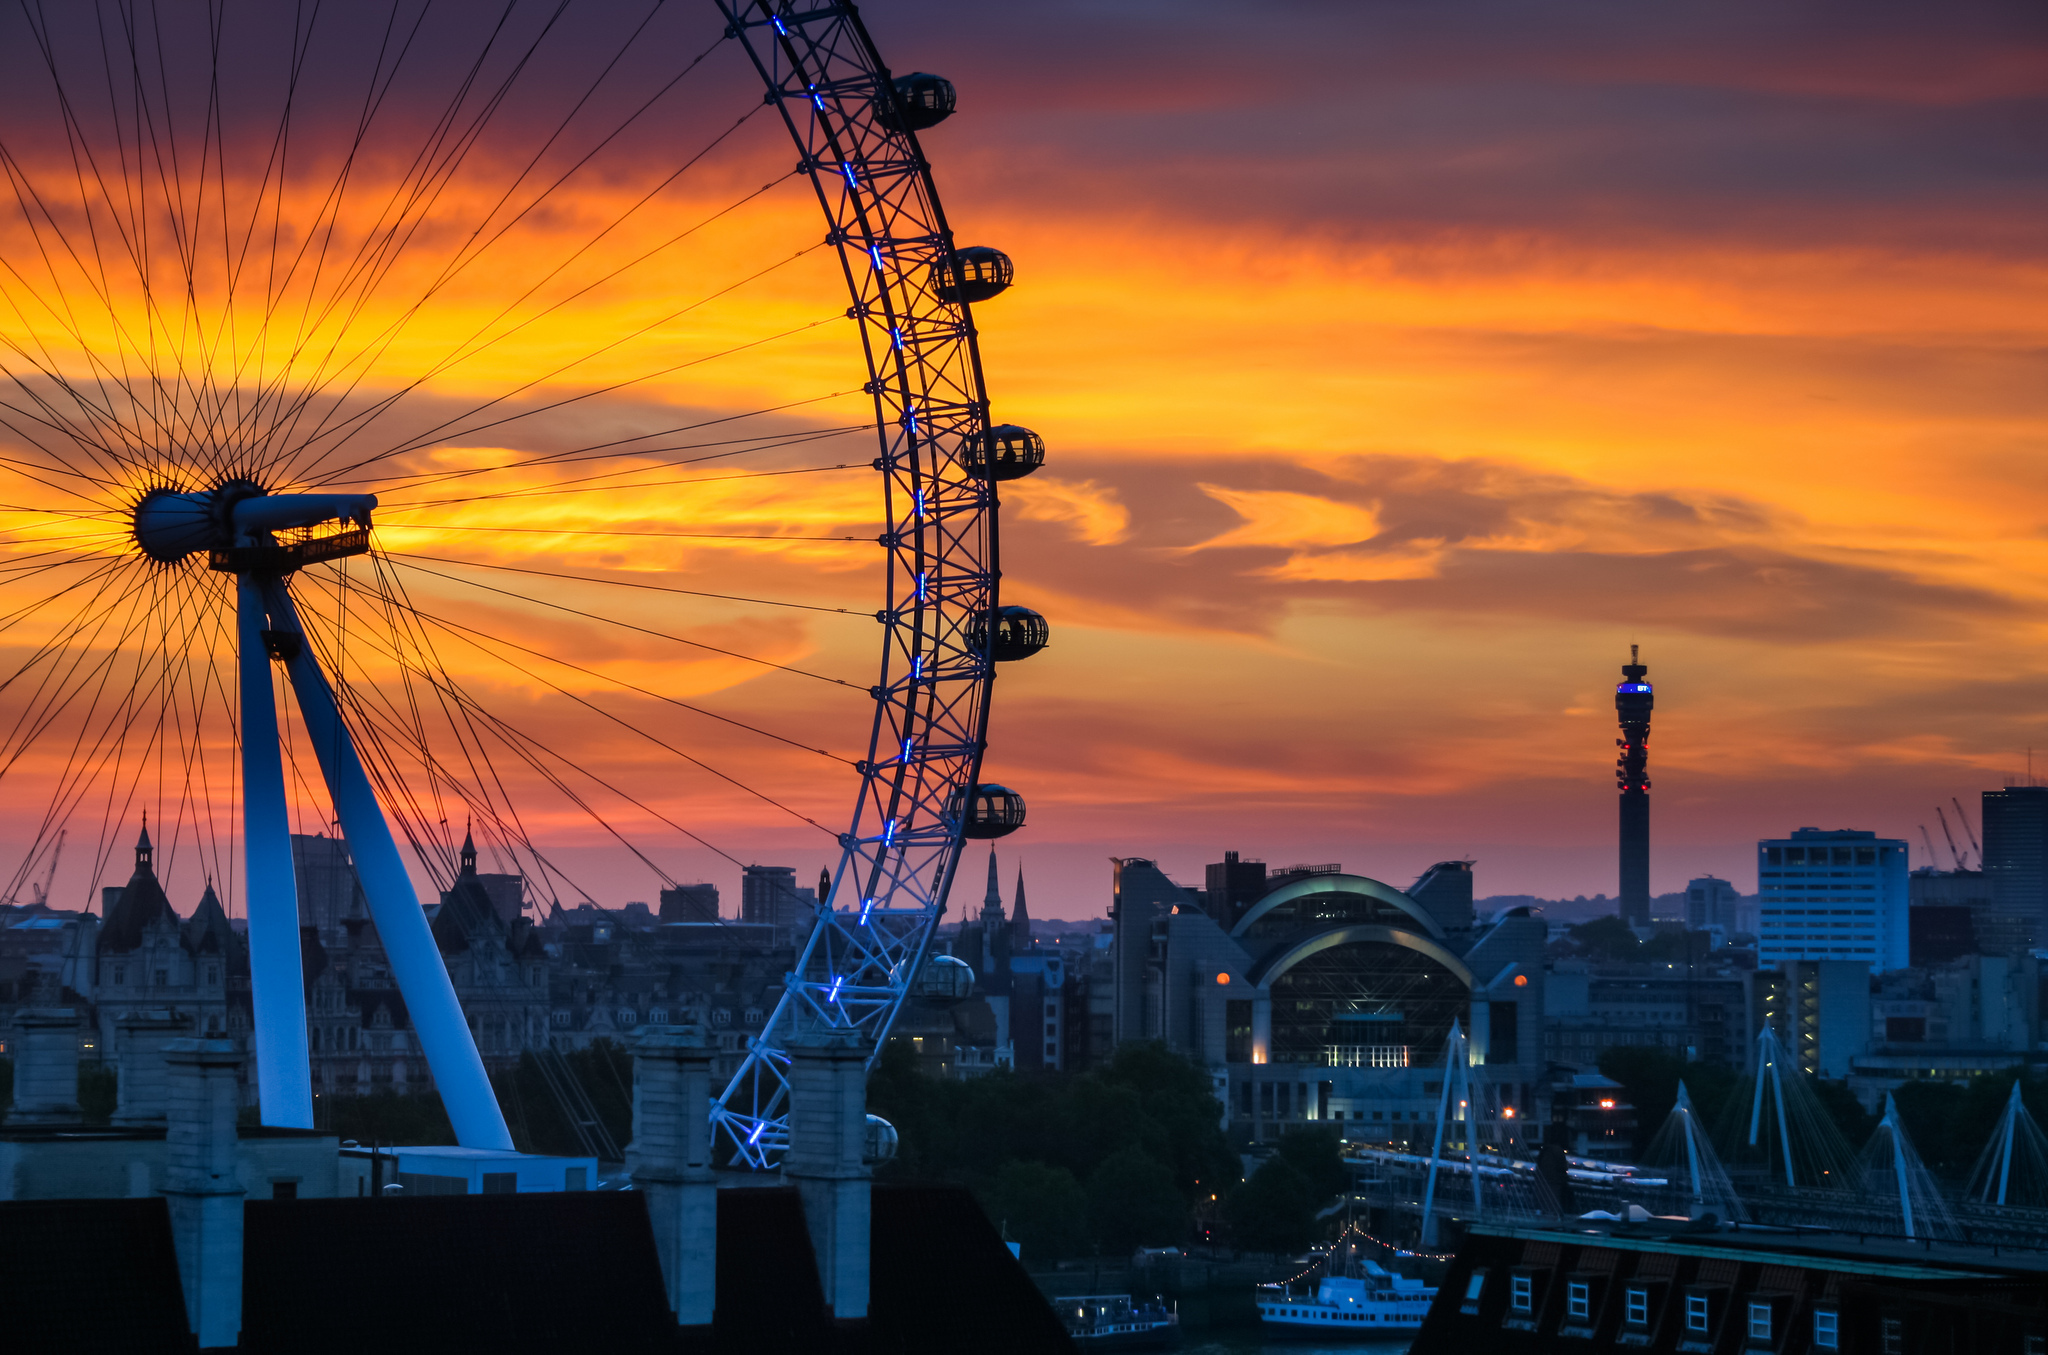 evening sunset on london city mind blowing wallpaper